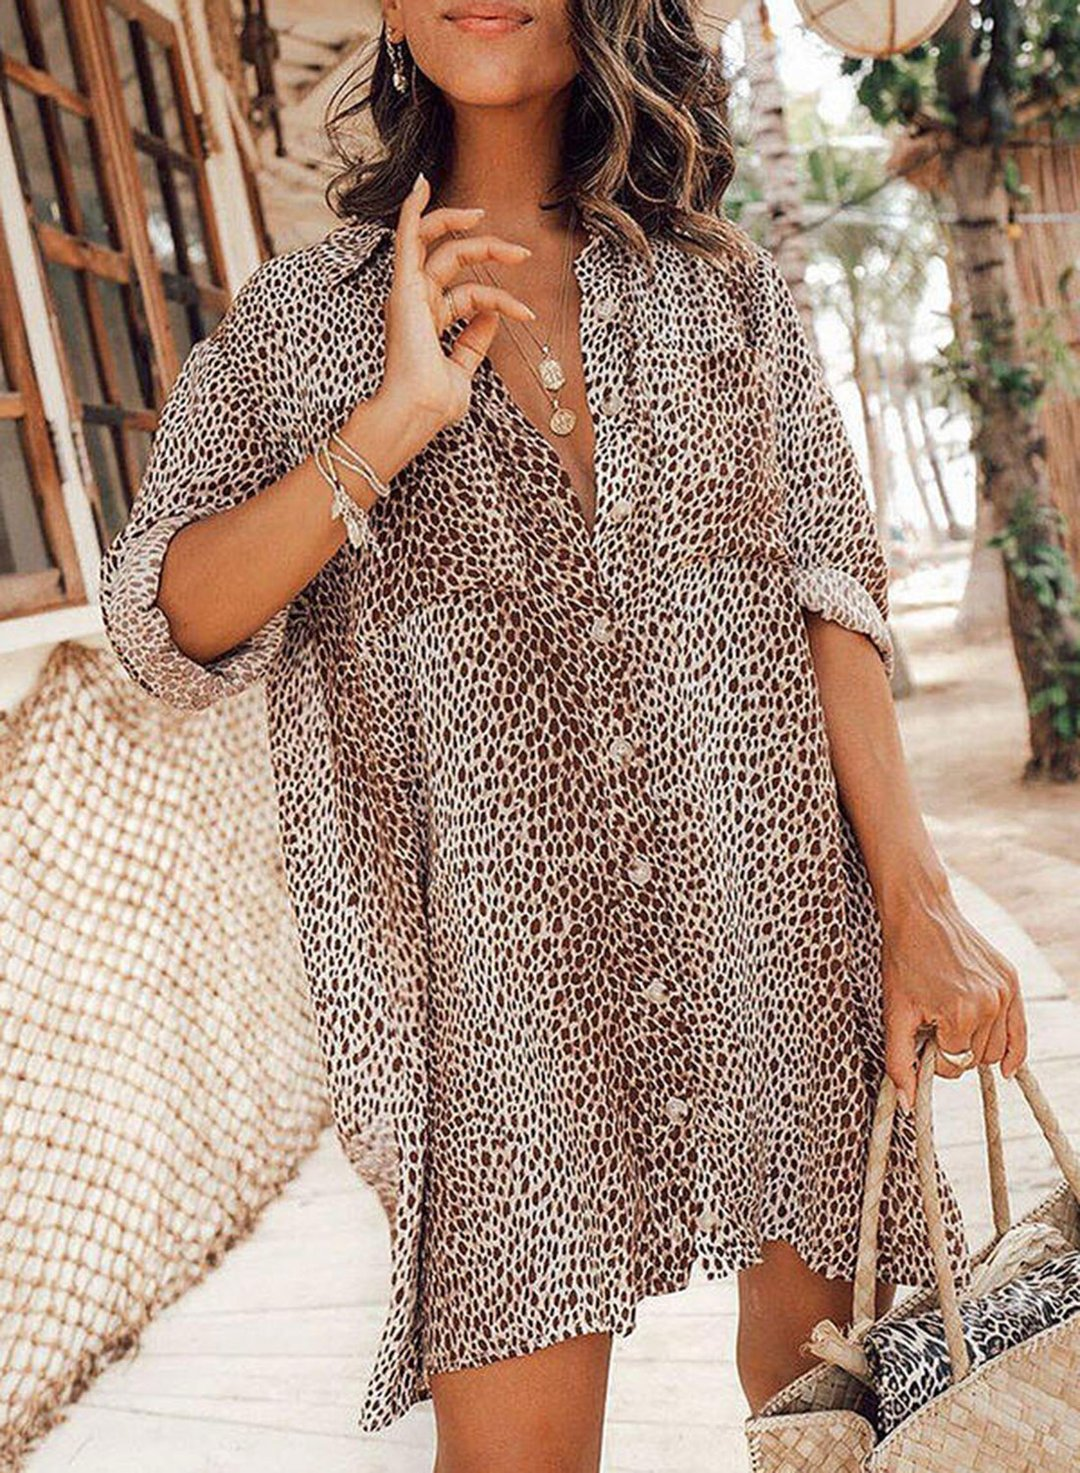 Leopard Women's Maxi Dresses Button Fit & Flare Leopard Long Sleeve Turn Down Collar Casual Beach Maxi Dress LC42494-20